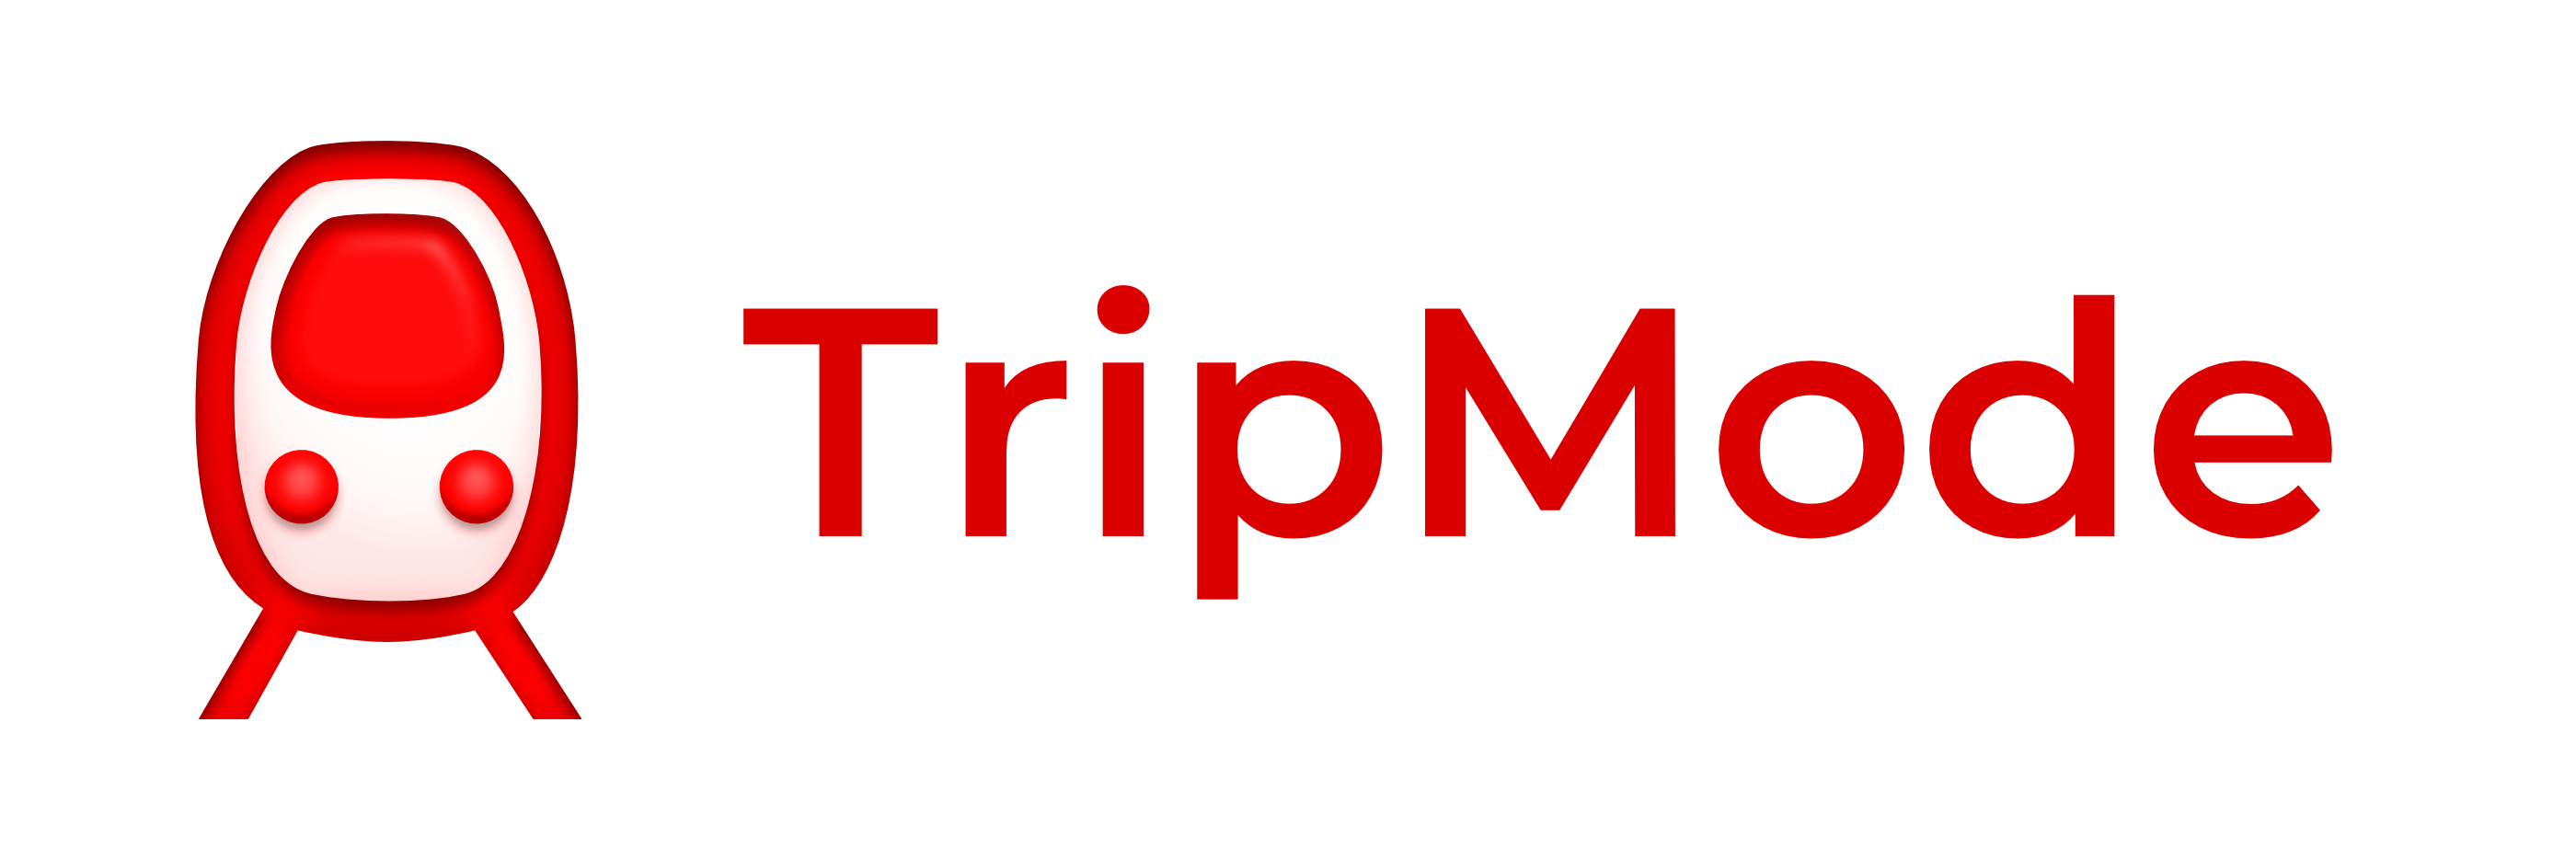 Tripmode3 logo and text b